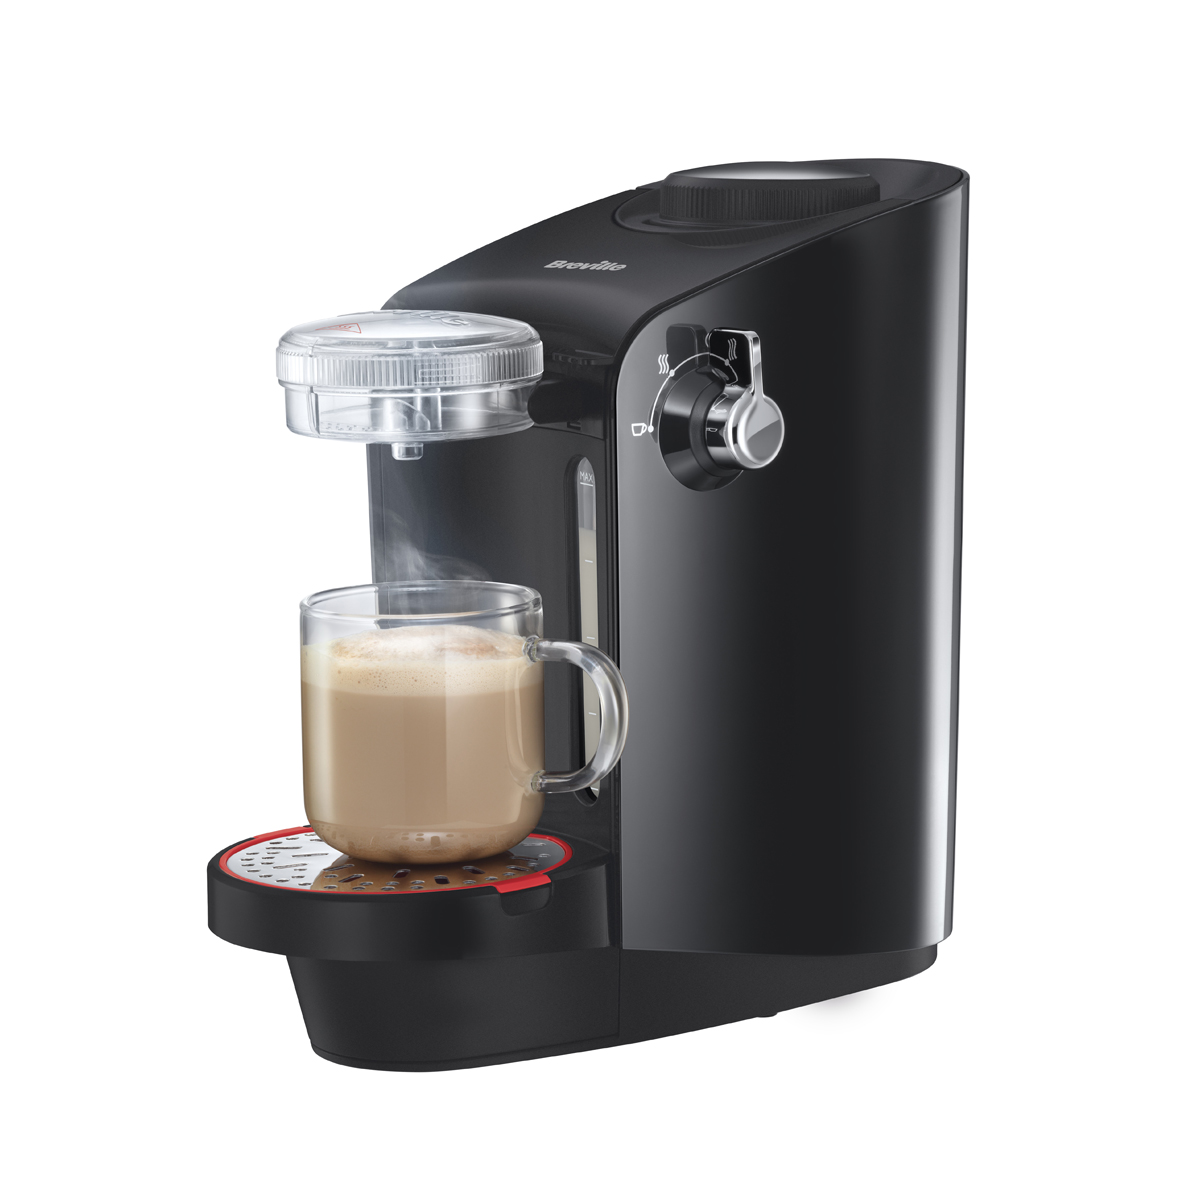 Coffee Maker Makes Hottest Coffee : Breville Moments Instant Coffee Machine and Hot Drink Maker